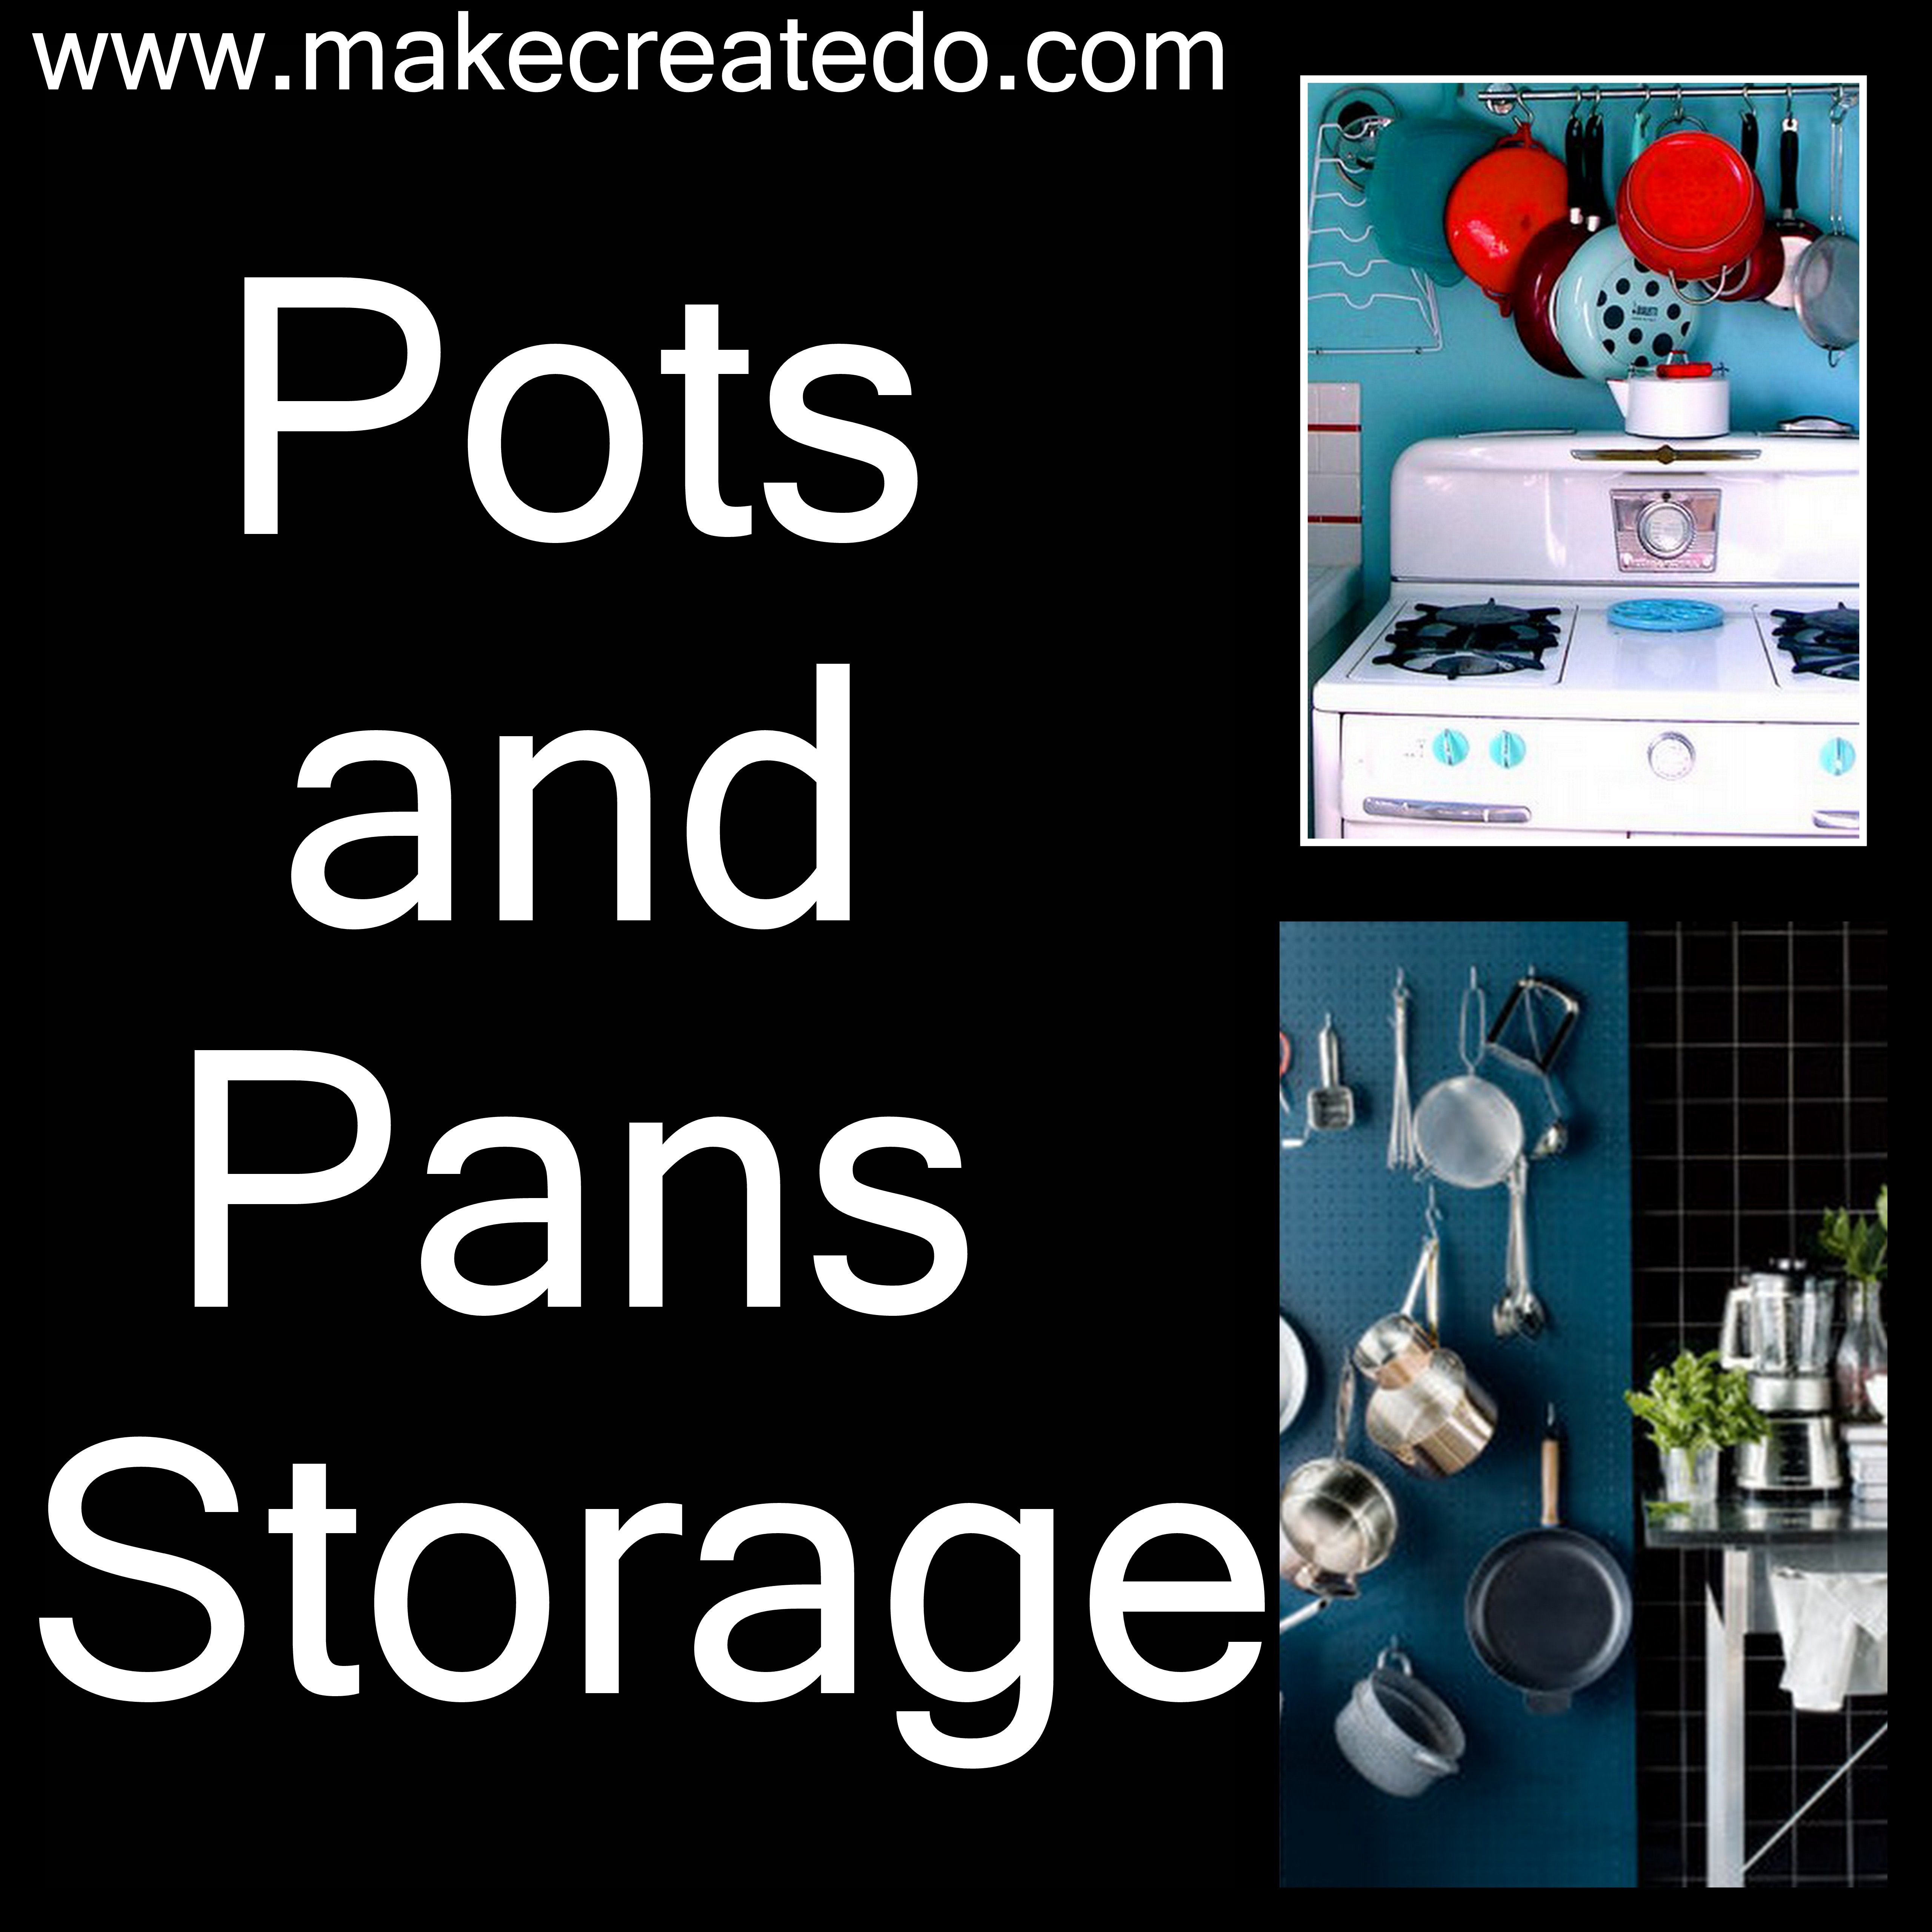 Repurposed pallet ideas pots and pans organizing and storage ideas